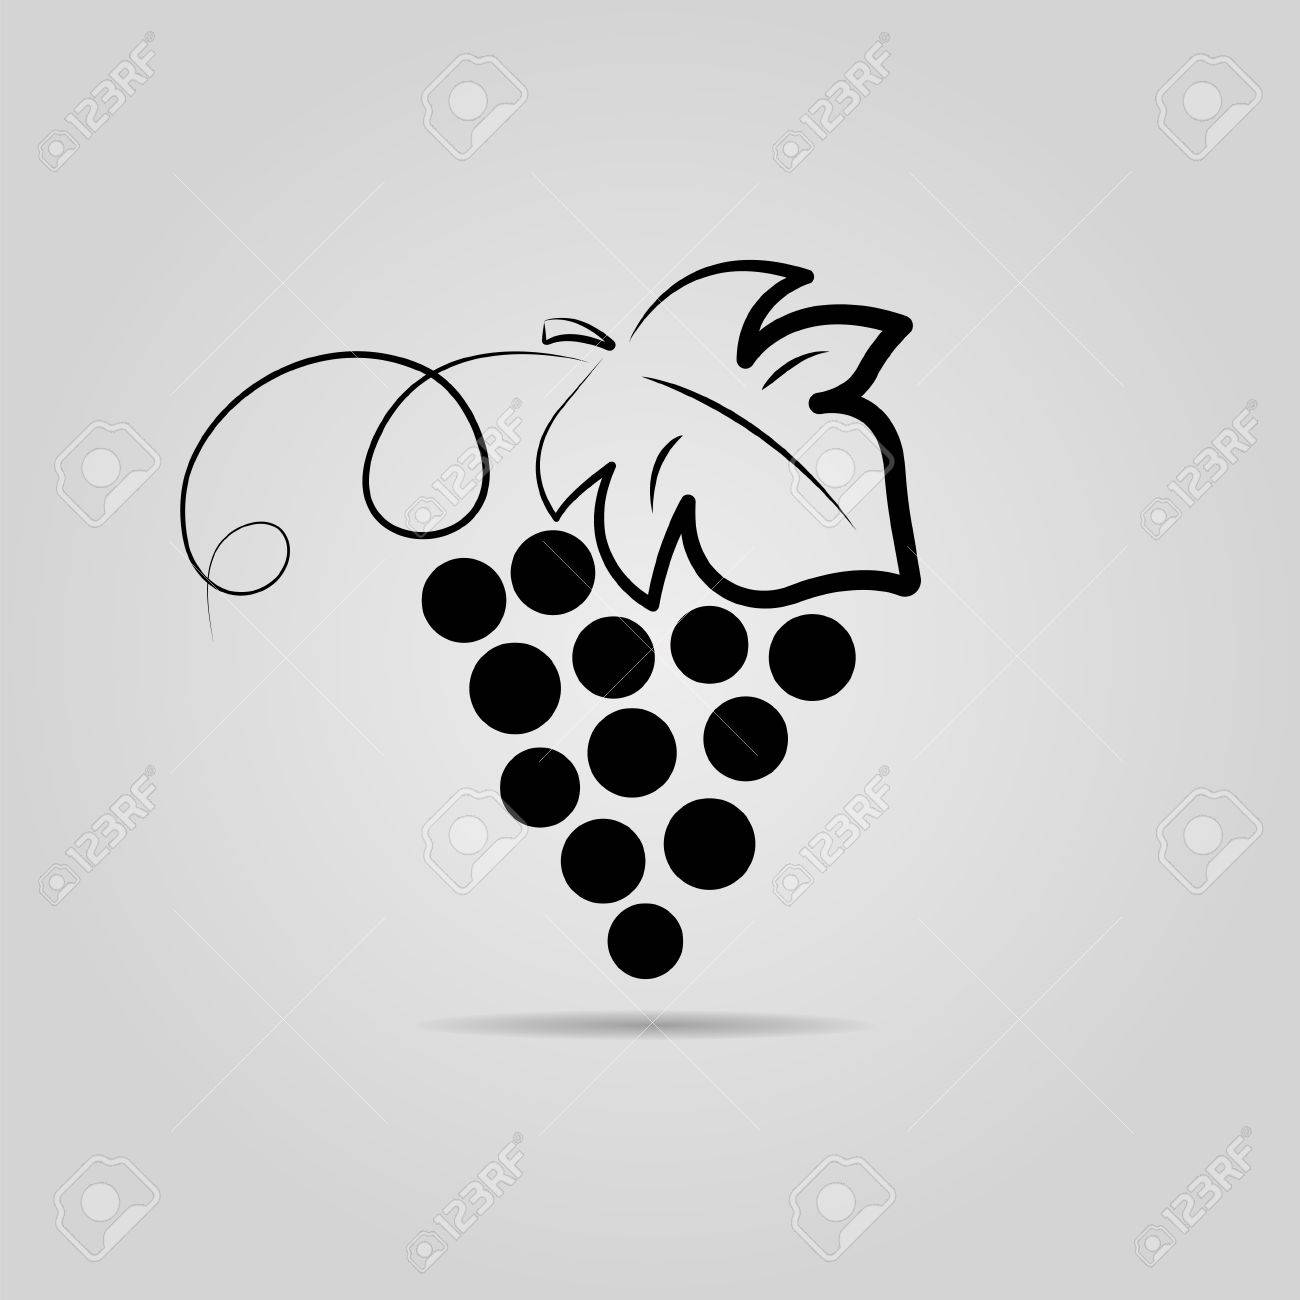 Bunch of grapes. Wine background. Logo design for the company. - 74724497